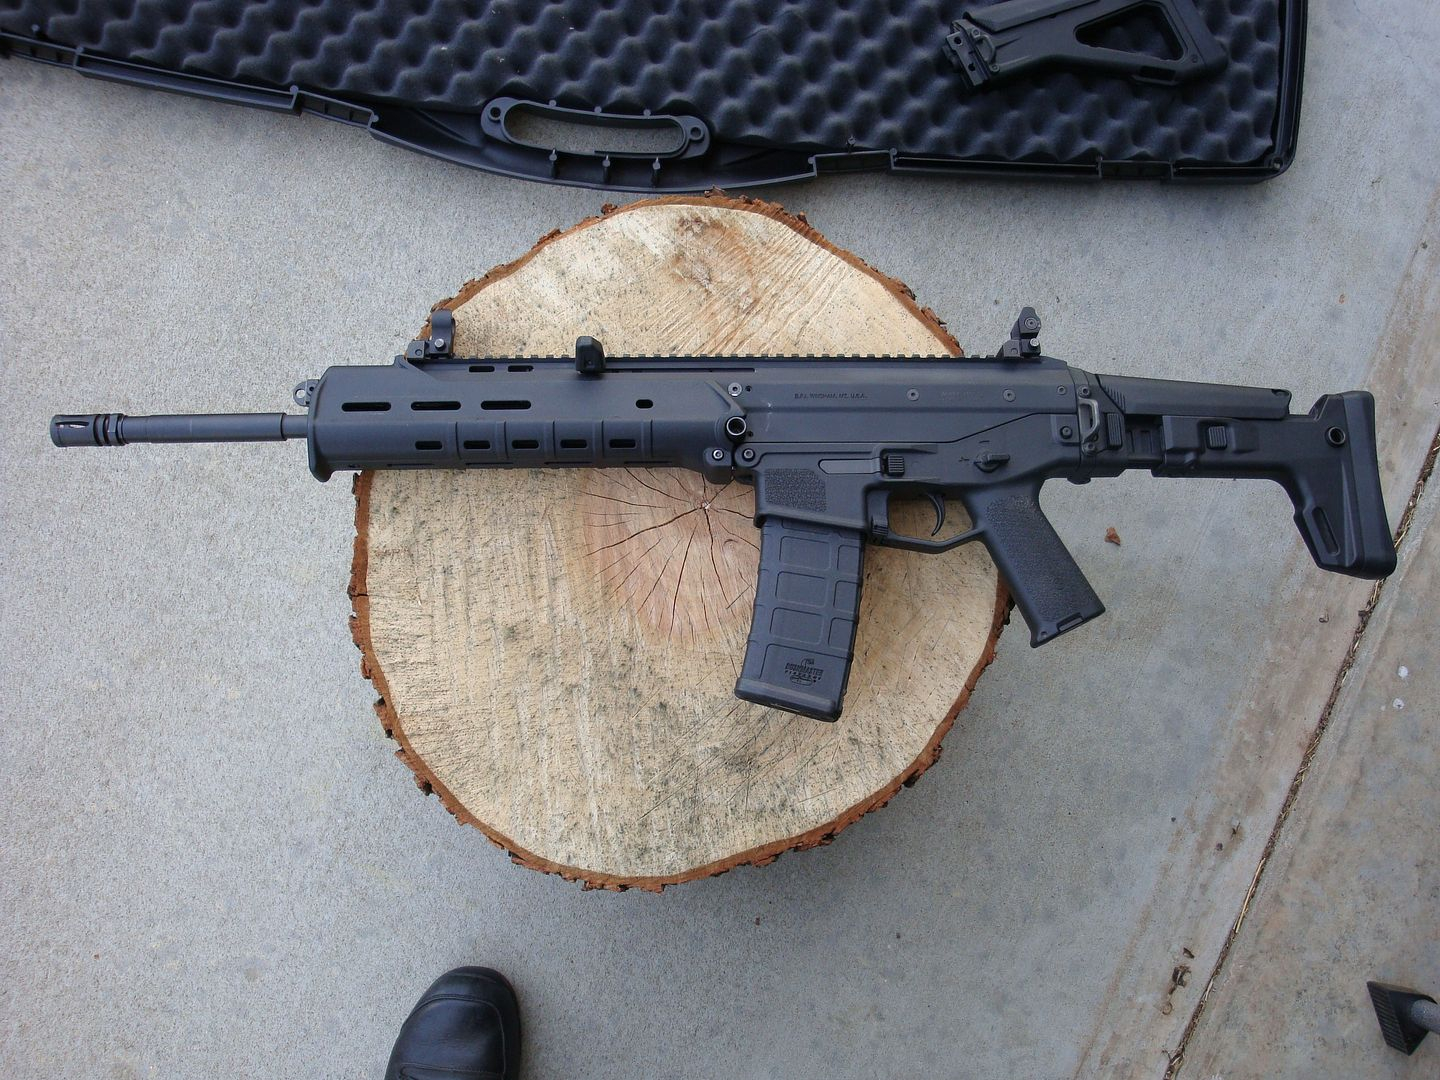 [4Sale] Bushmaster Acr (Adaptive Combat Rifle) With Both Regarding Acr Case In Point